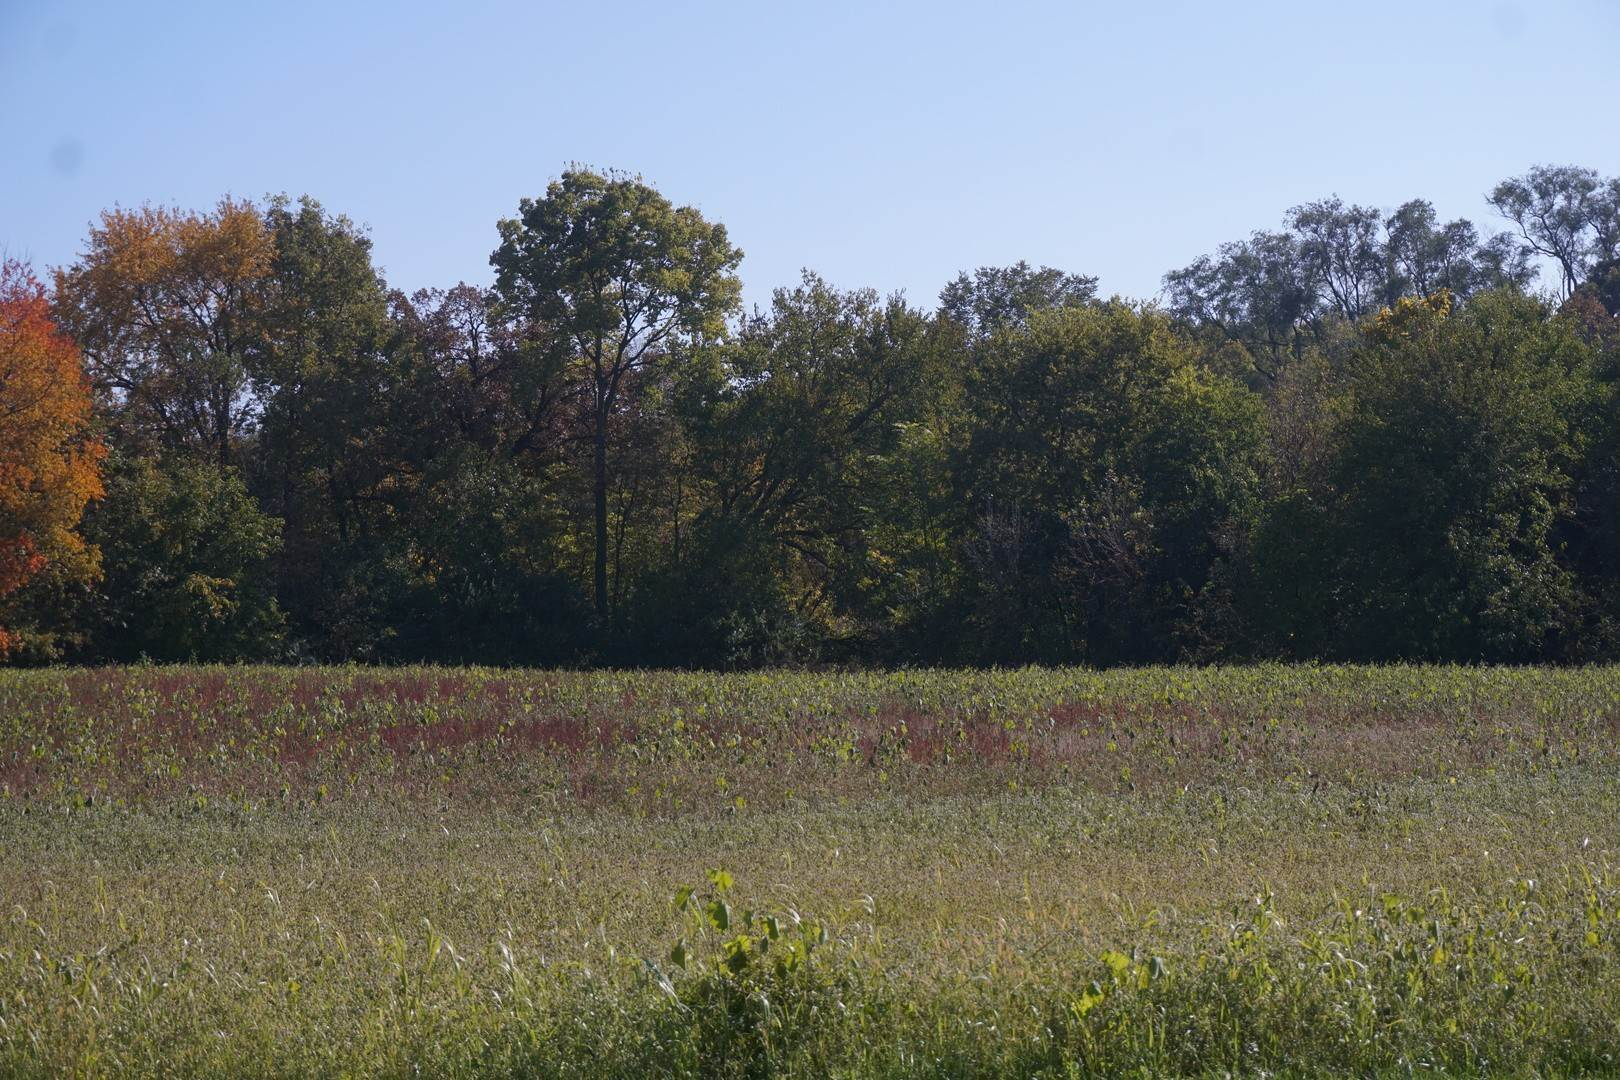 Land for Sale at Sec 8 Twp 34n R 9e Channahon, Illinois 60410 United States